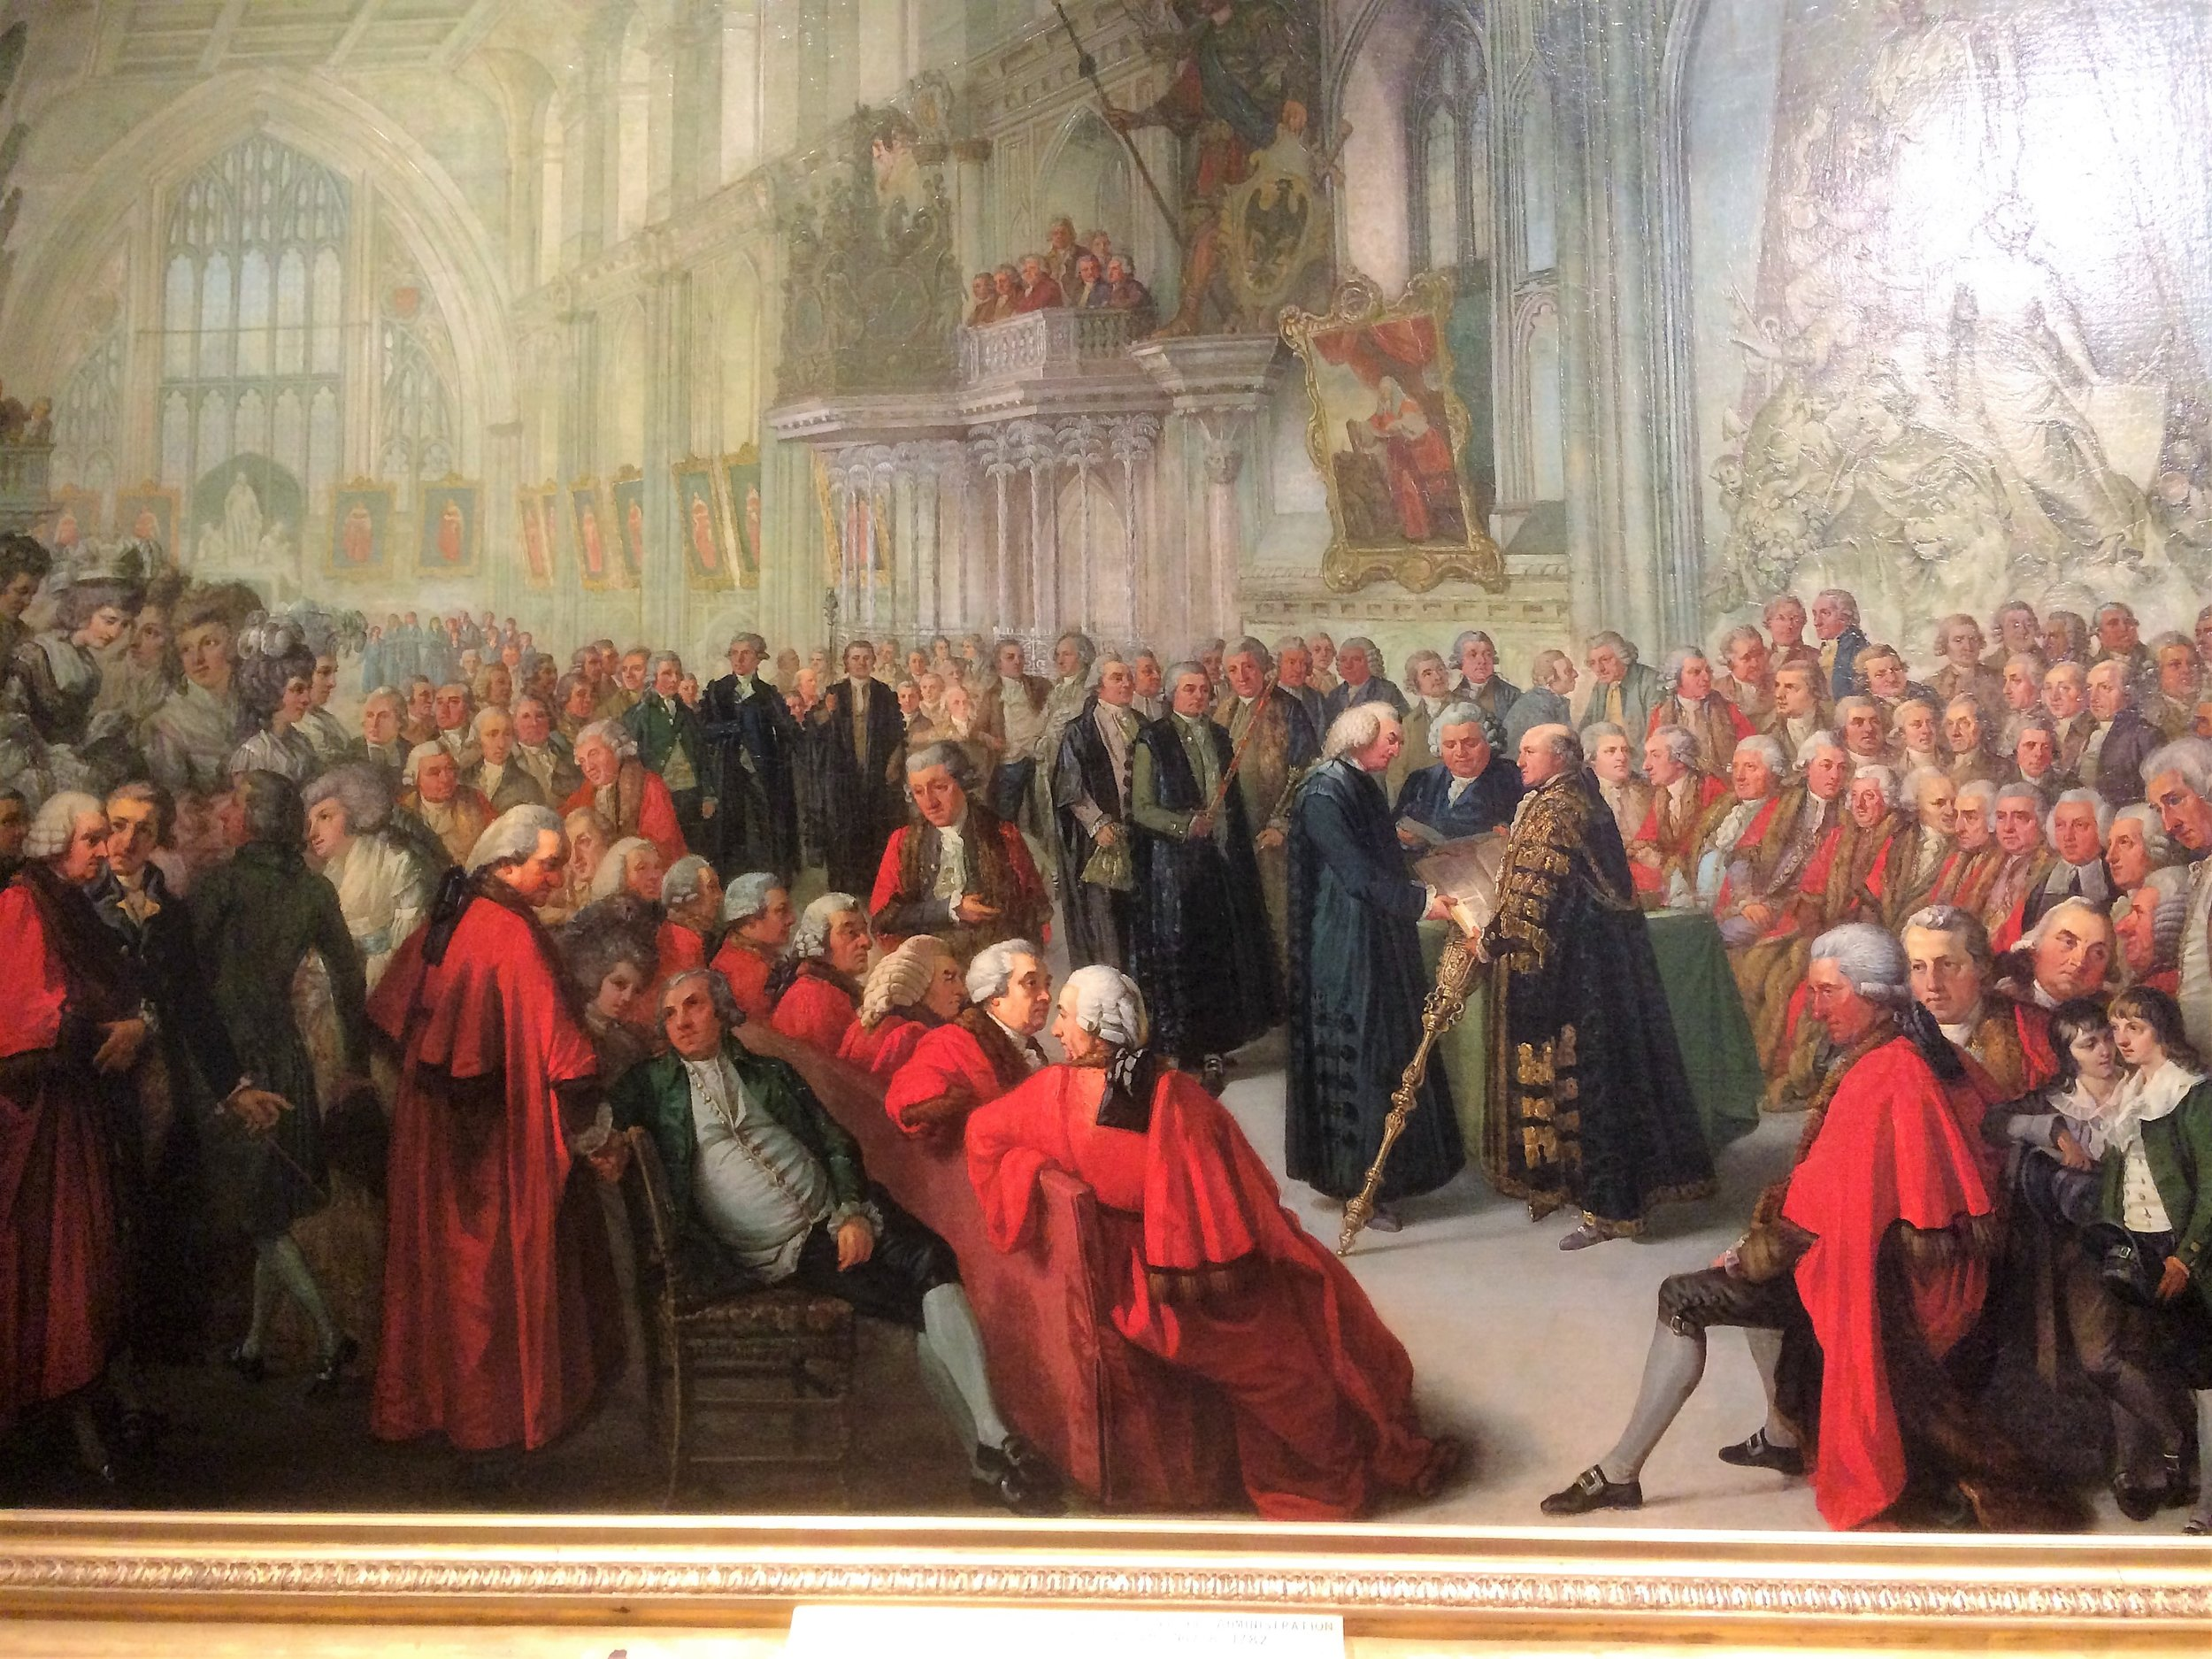 Guildhall, 1782. Thomas Wright is front-centre, with his back to us, looking over his shoulder. Source: Collage